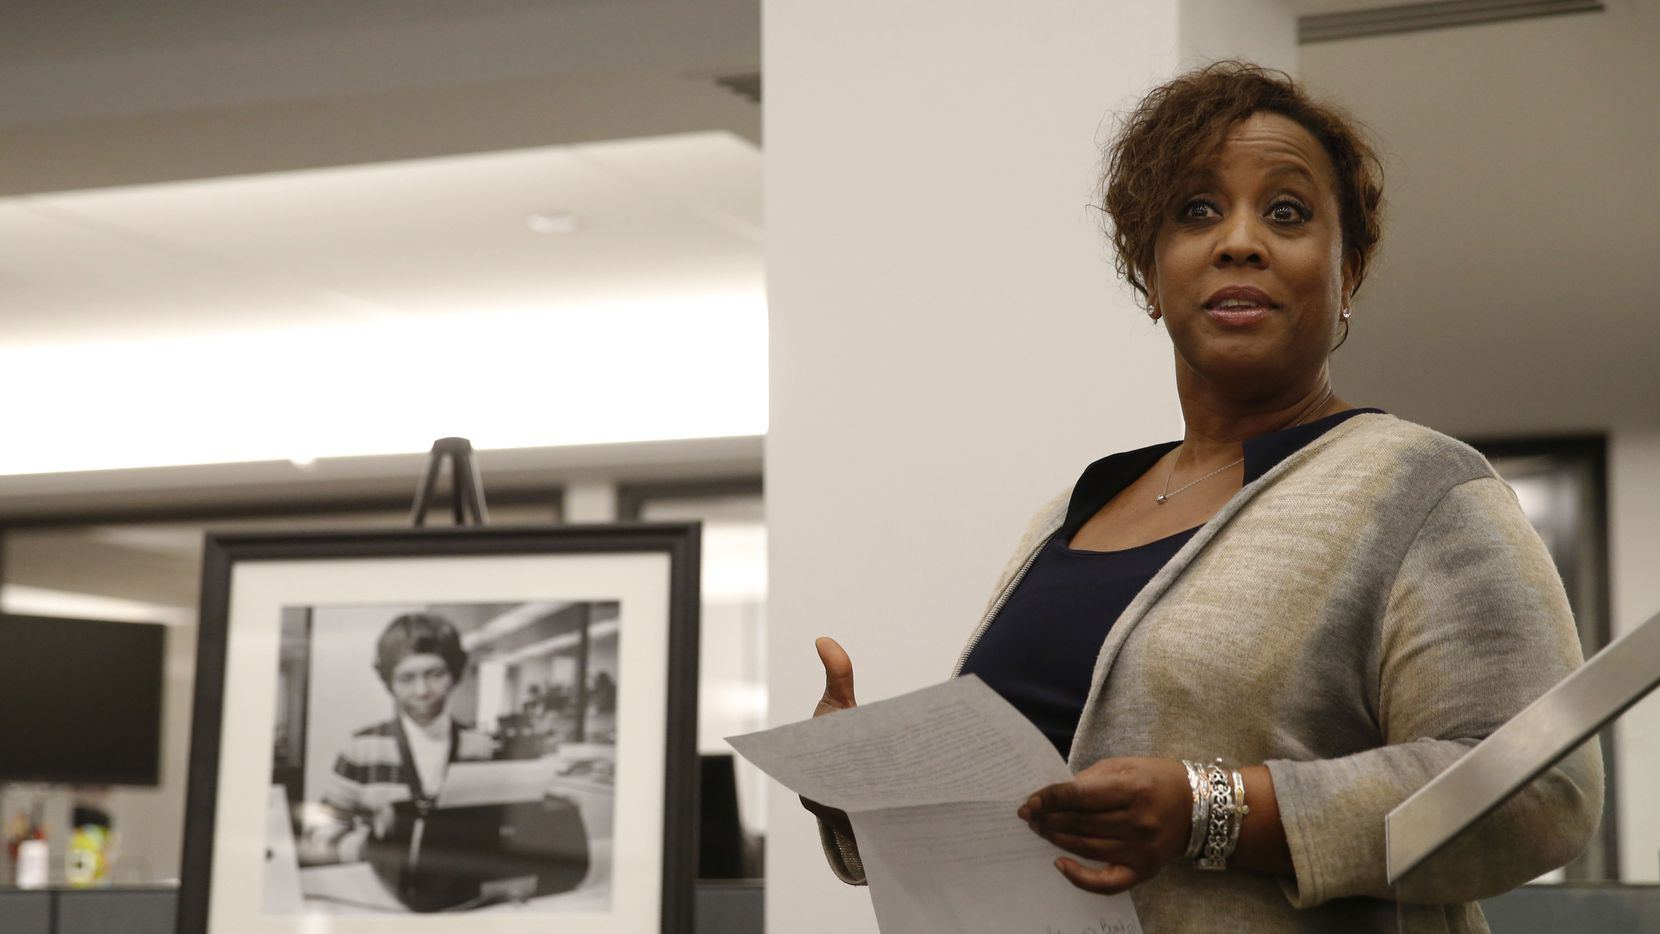 Leona Allen speaks during a 2018 dedication of a conference room at The Dallas Morning News in honor of Julia Scott Reed, the first full-time Black journalist hired at the newspaper.